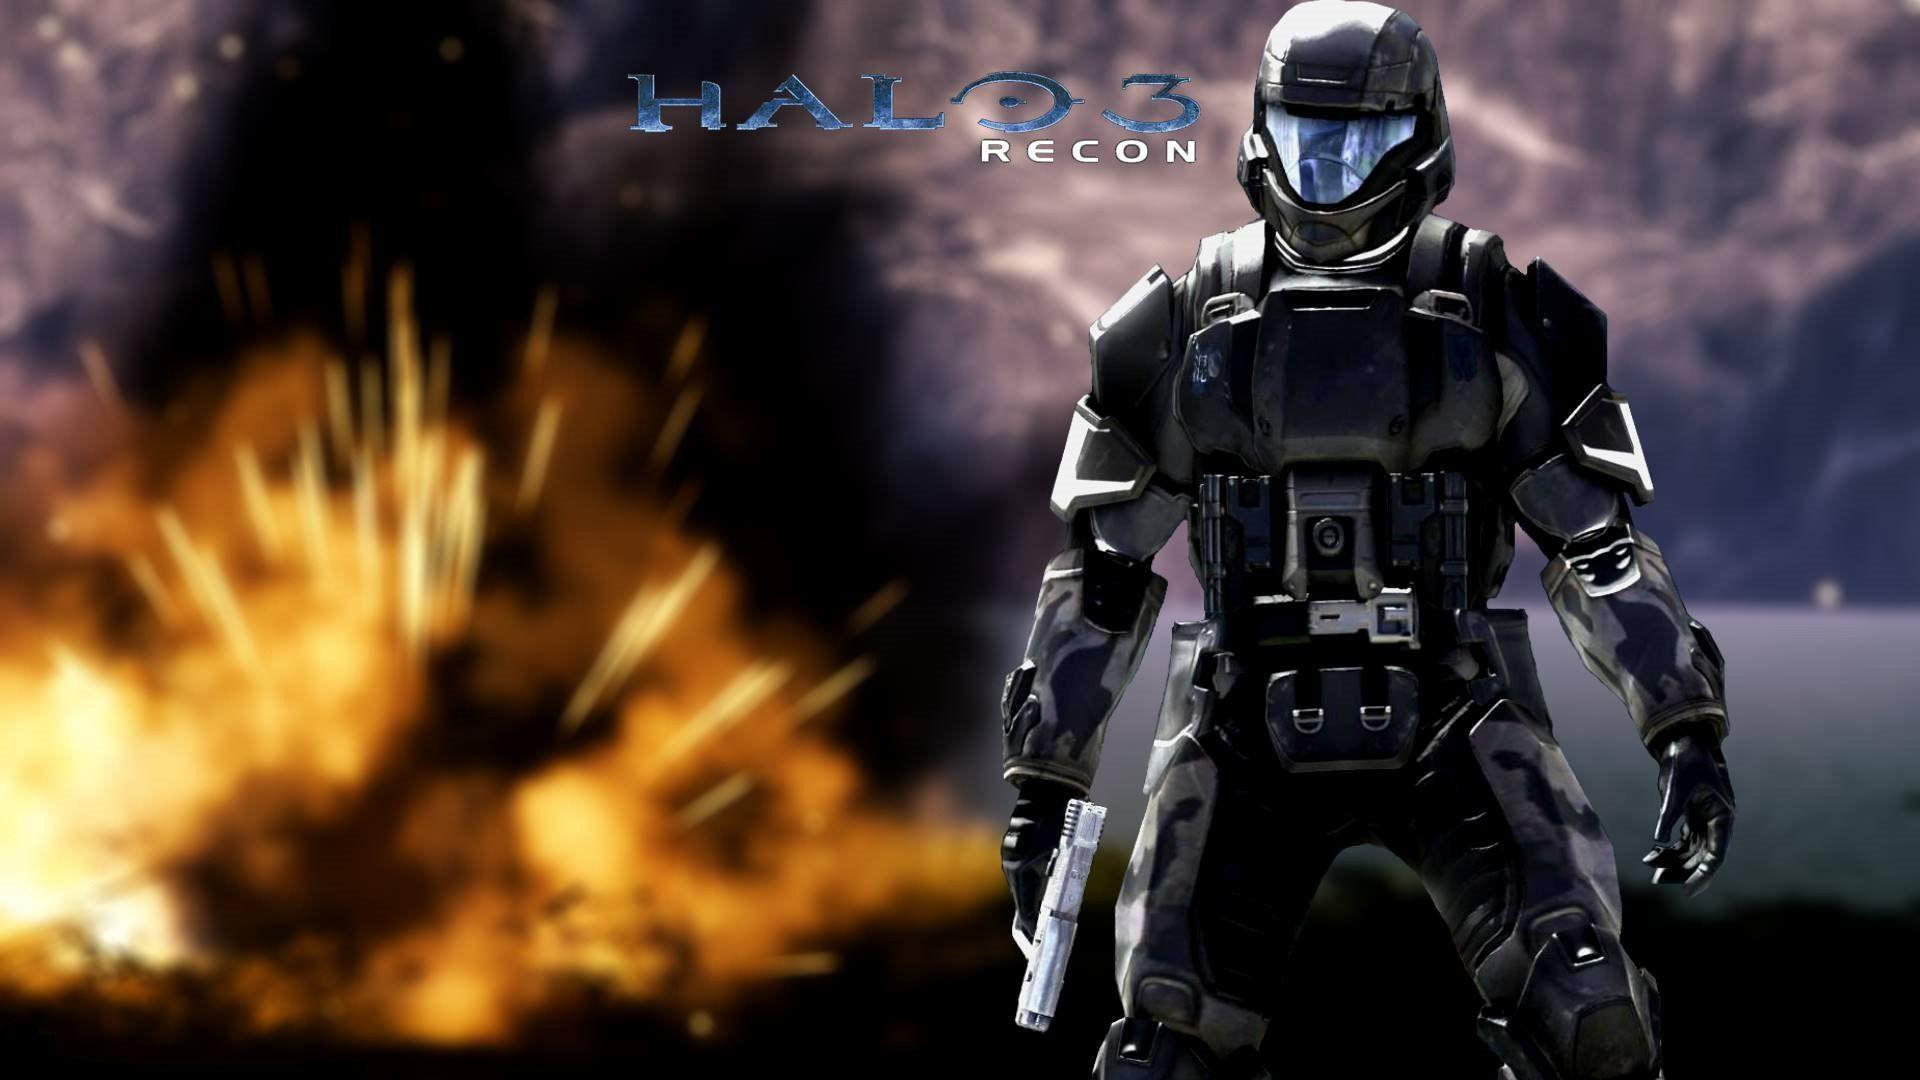 Cool Halo Backgrounds - Wallpaper Cave